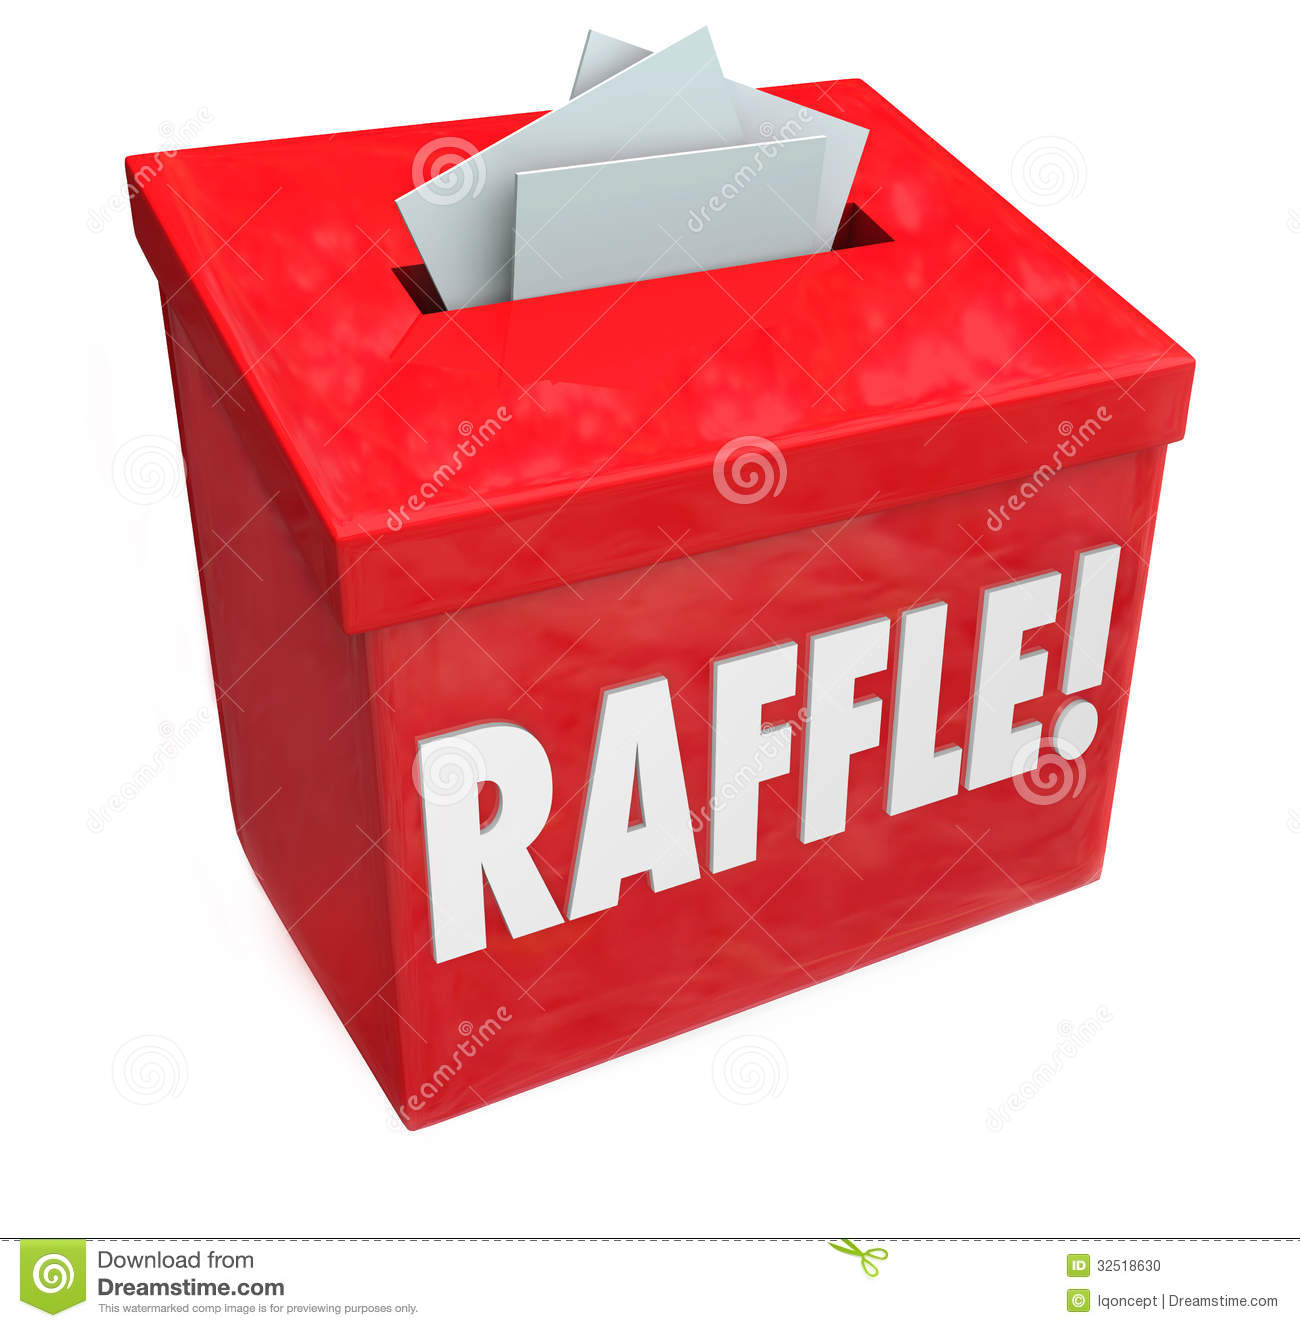 raffle stock photos images pictures 2 089 images 50 50 raffle enter to win box drop your tickets stock photo